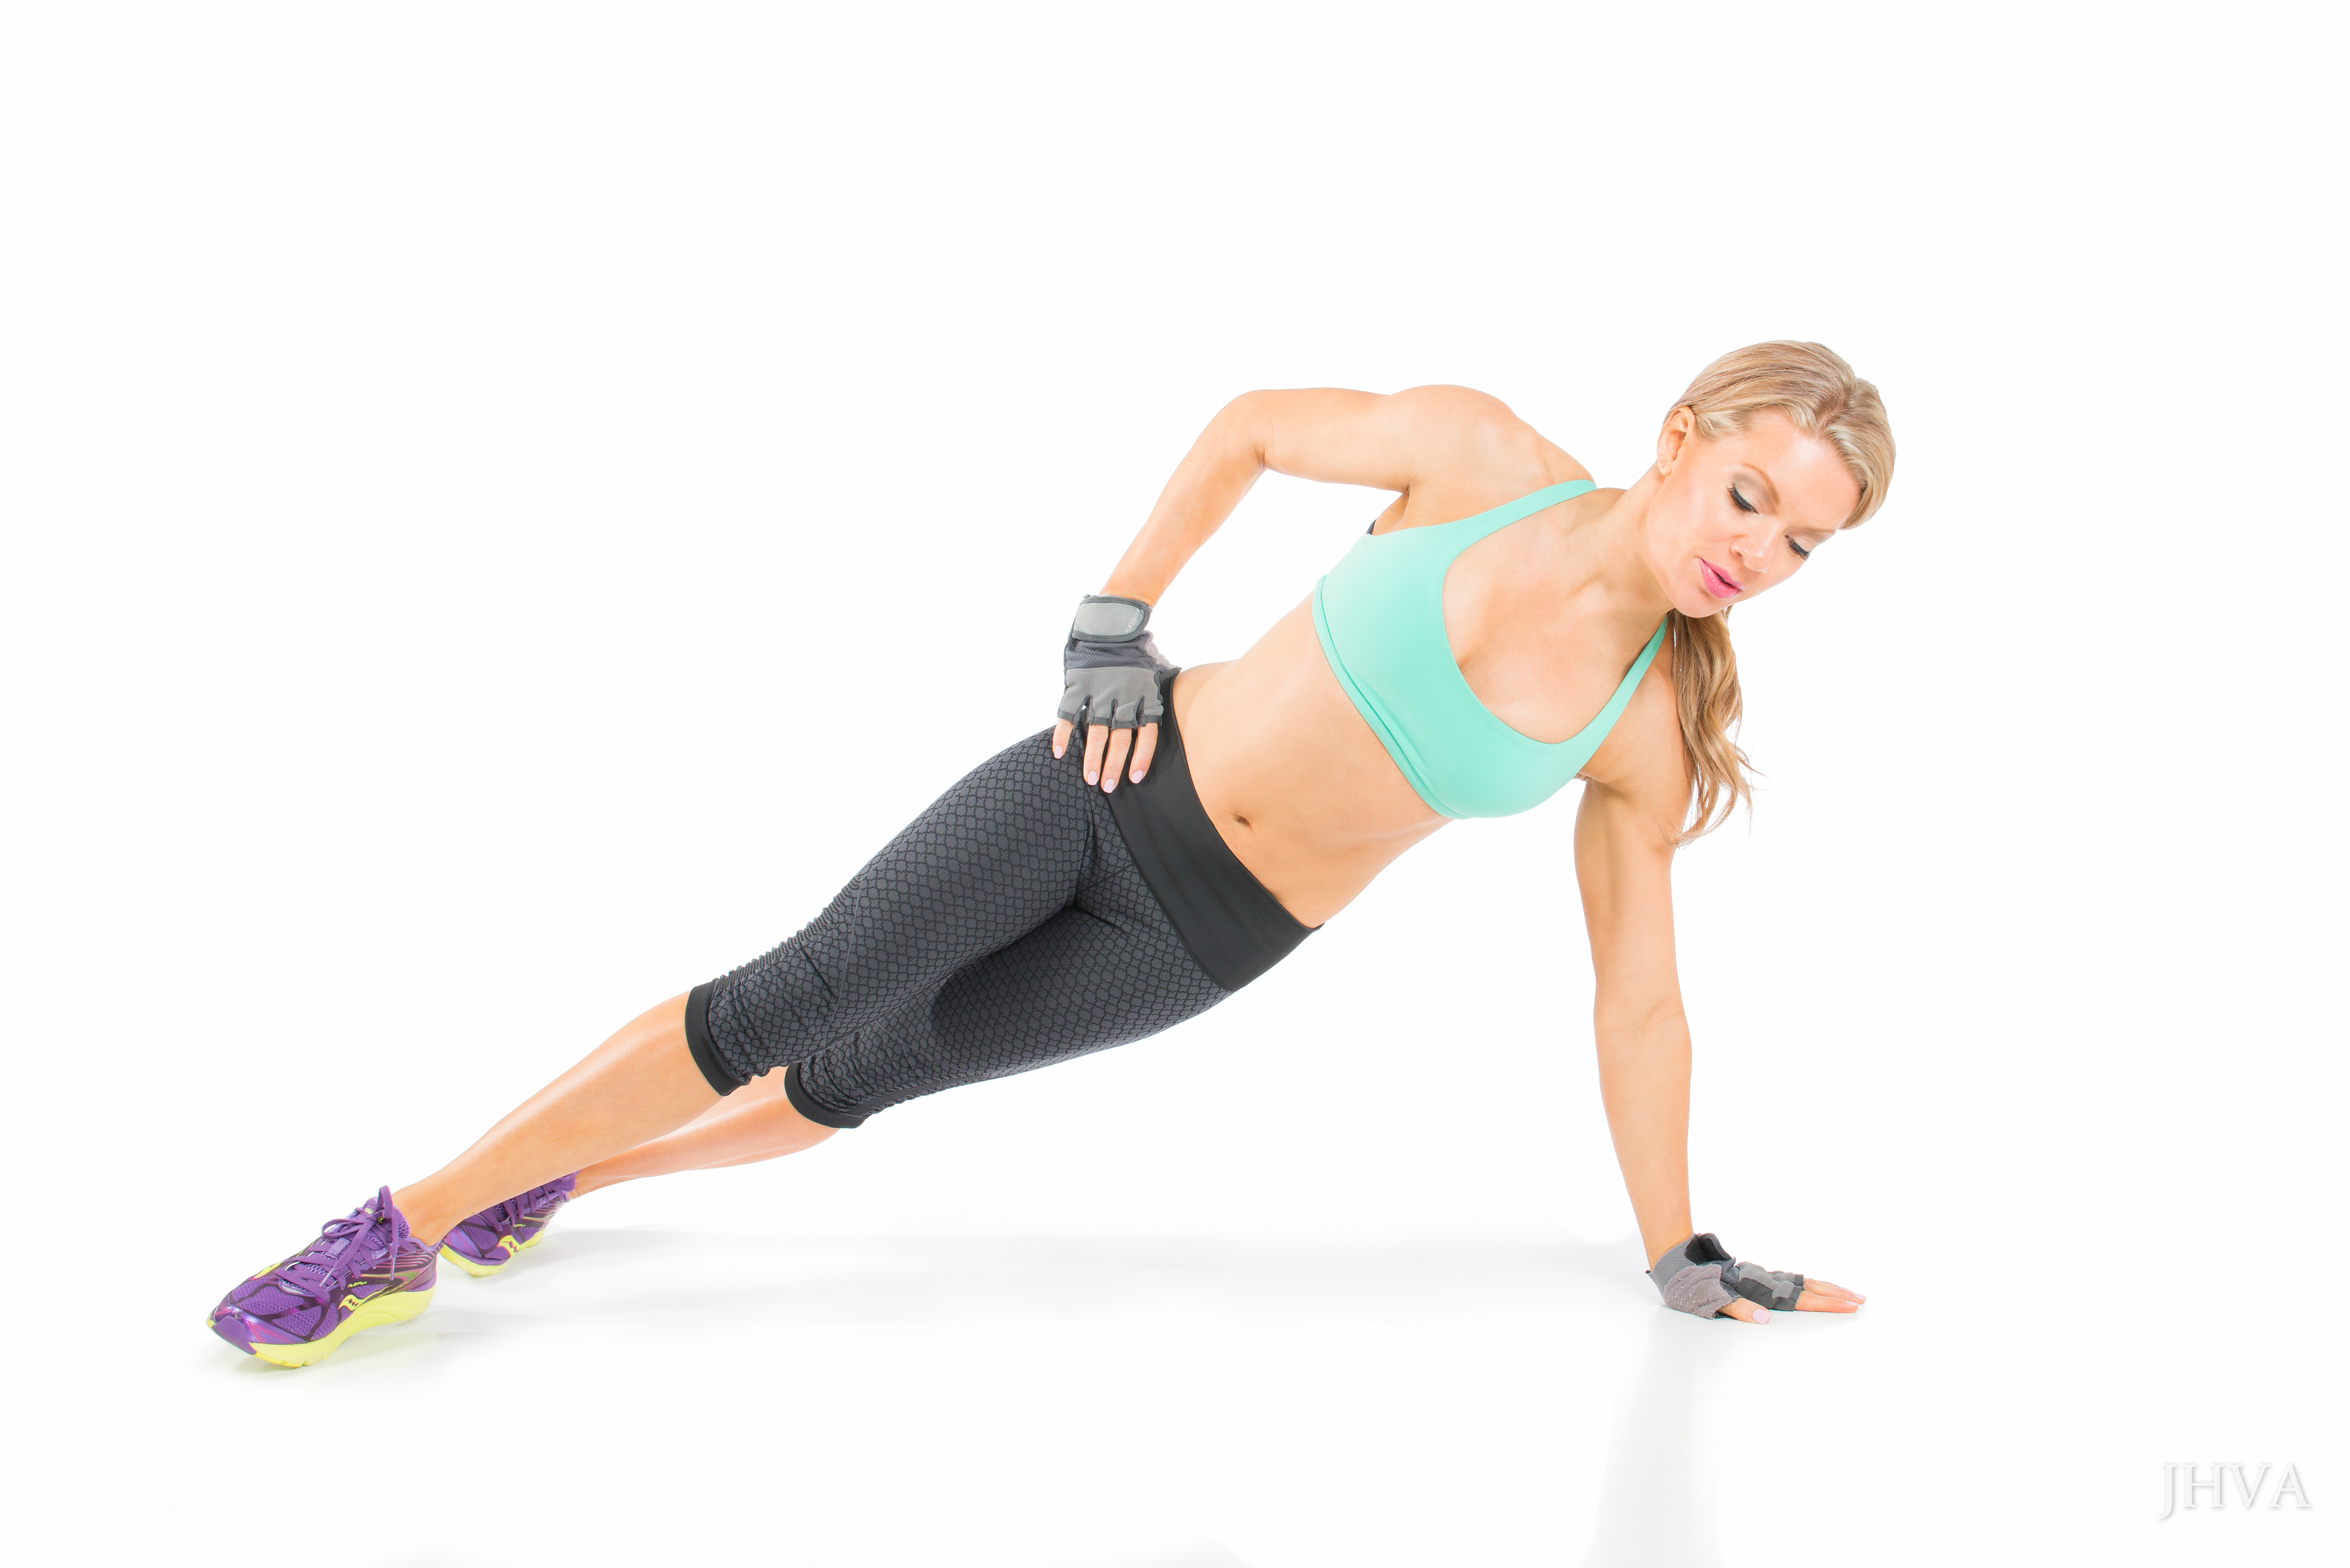 Aubrey side plank strong core